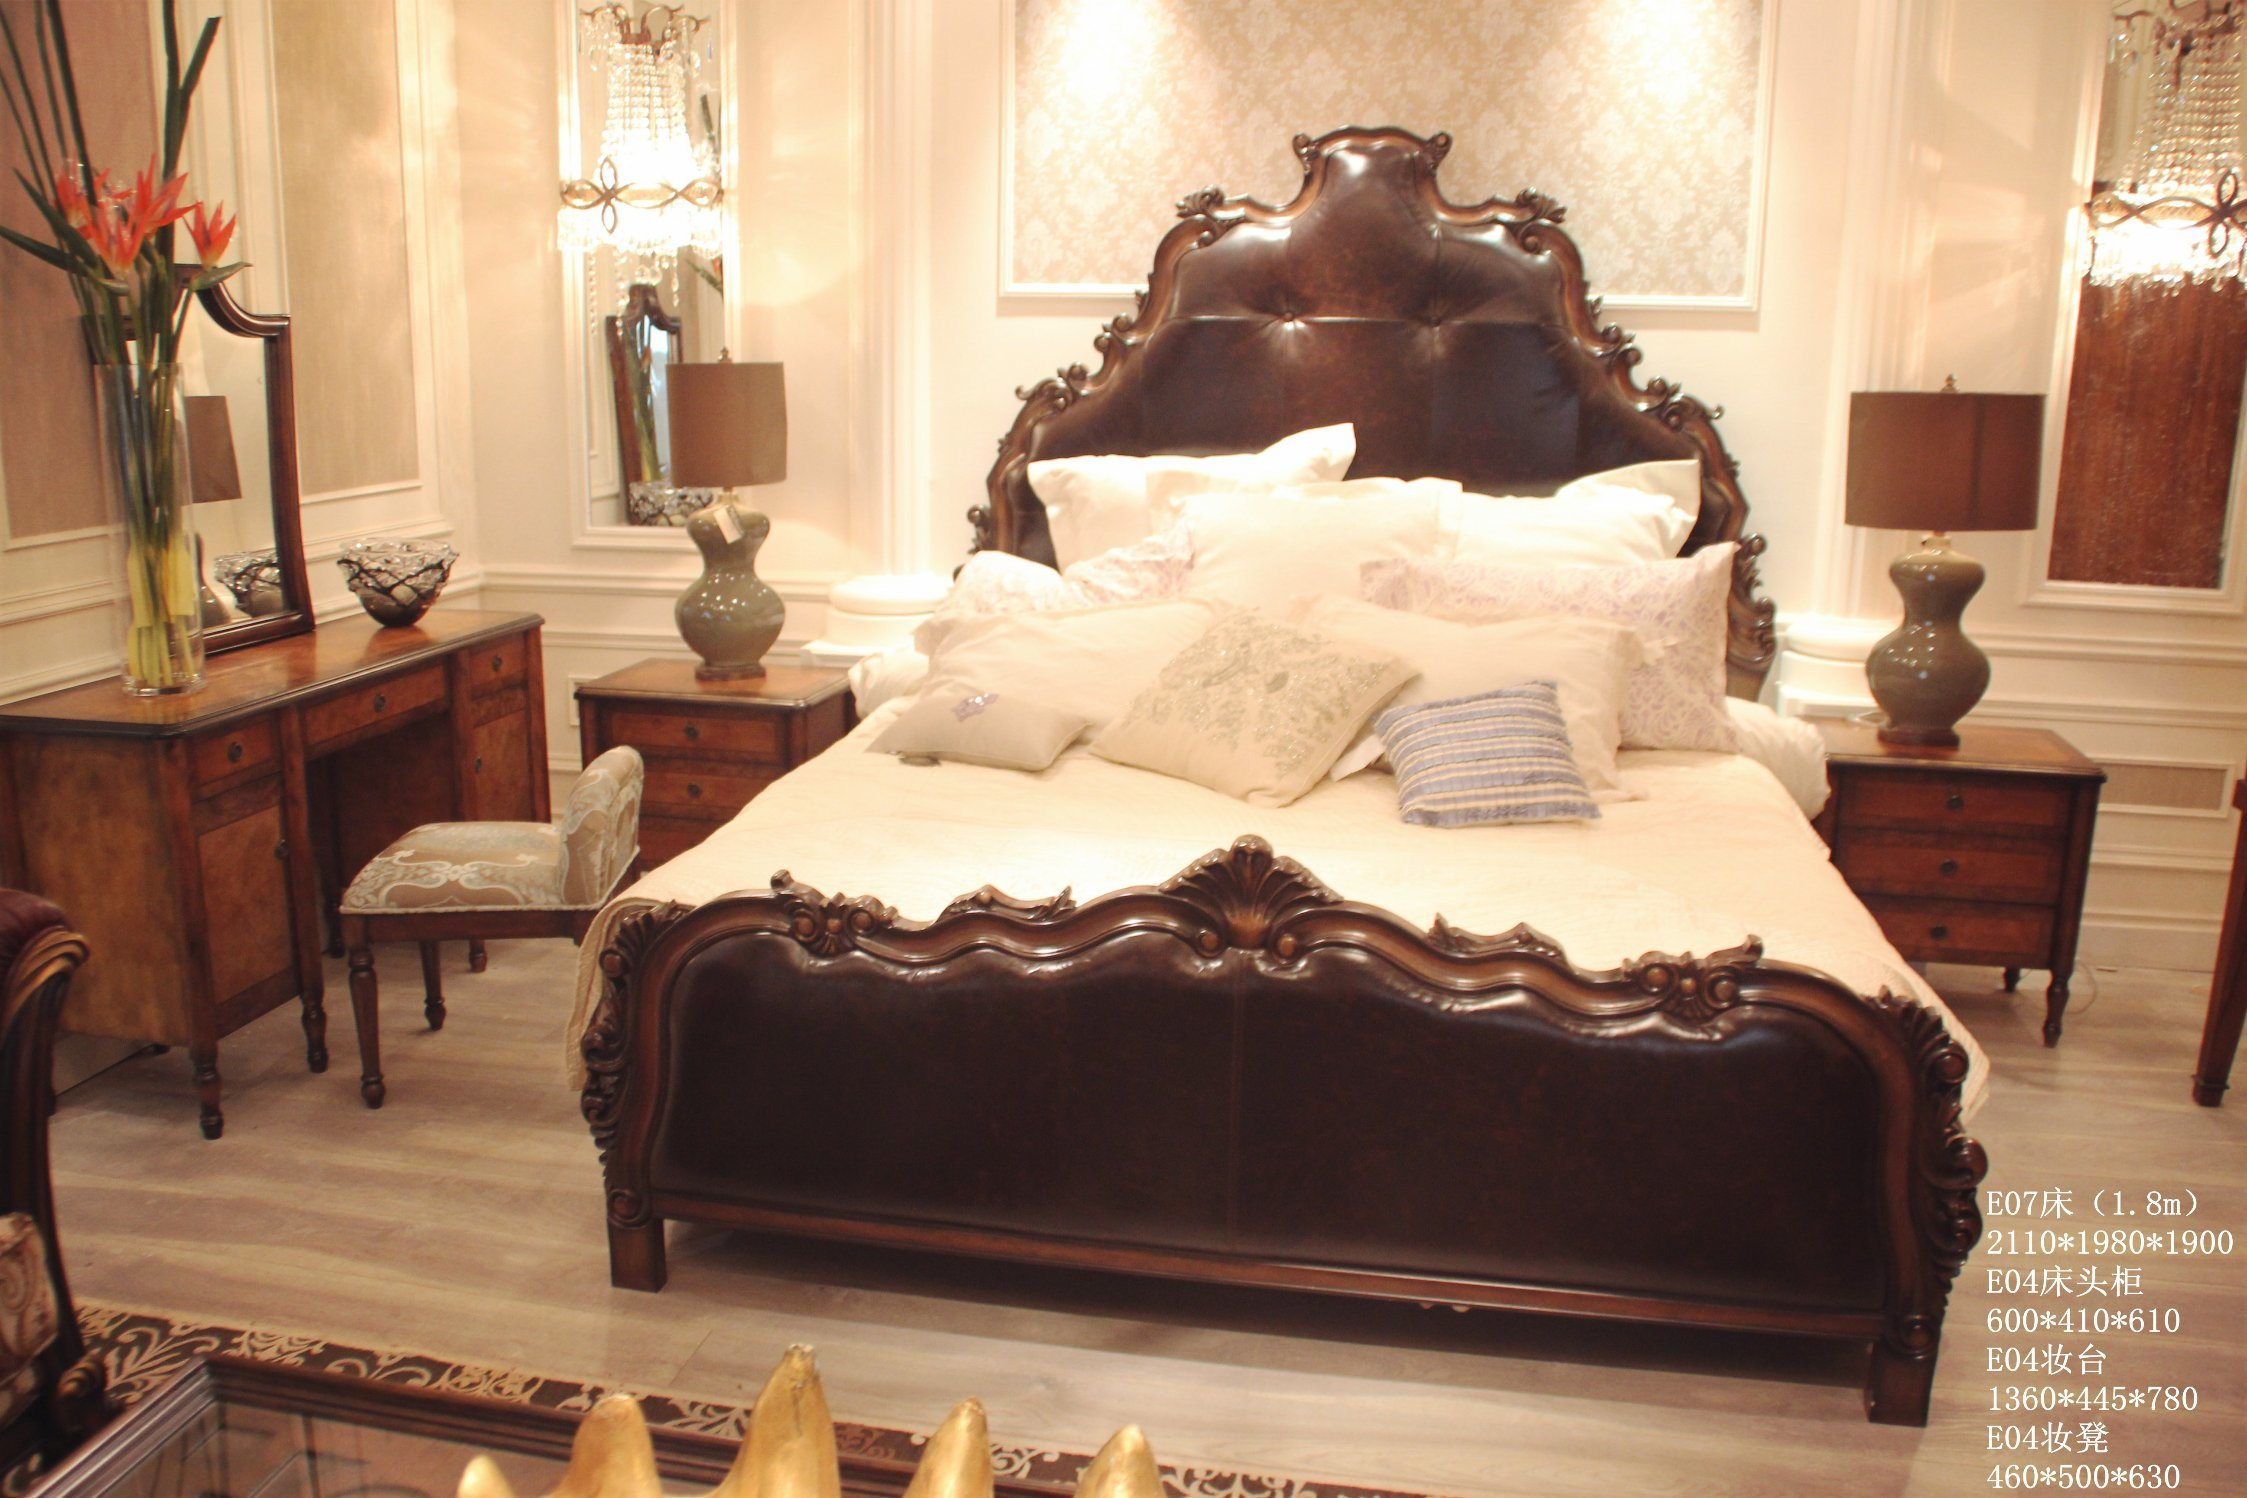 China Antique American Style Bed New Classical Home Bedroom Sets Furniture Photos Pictures Made In China Com